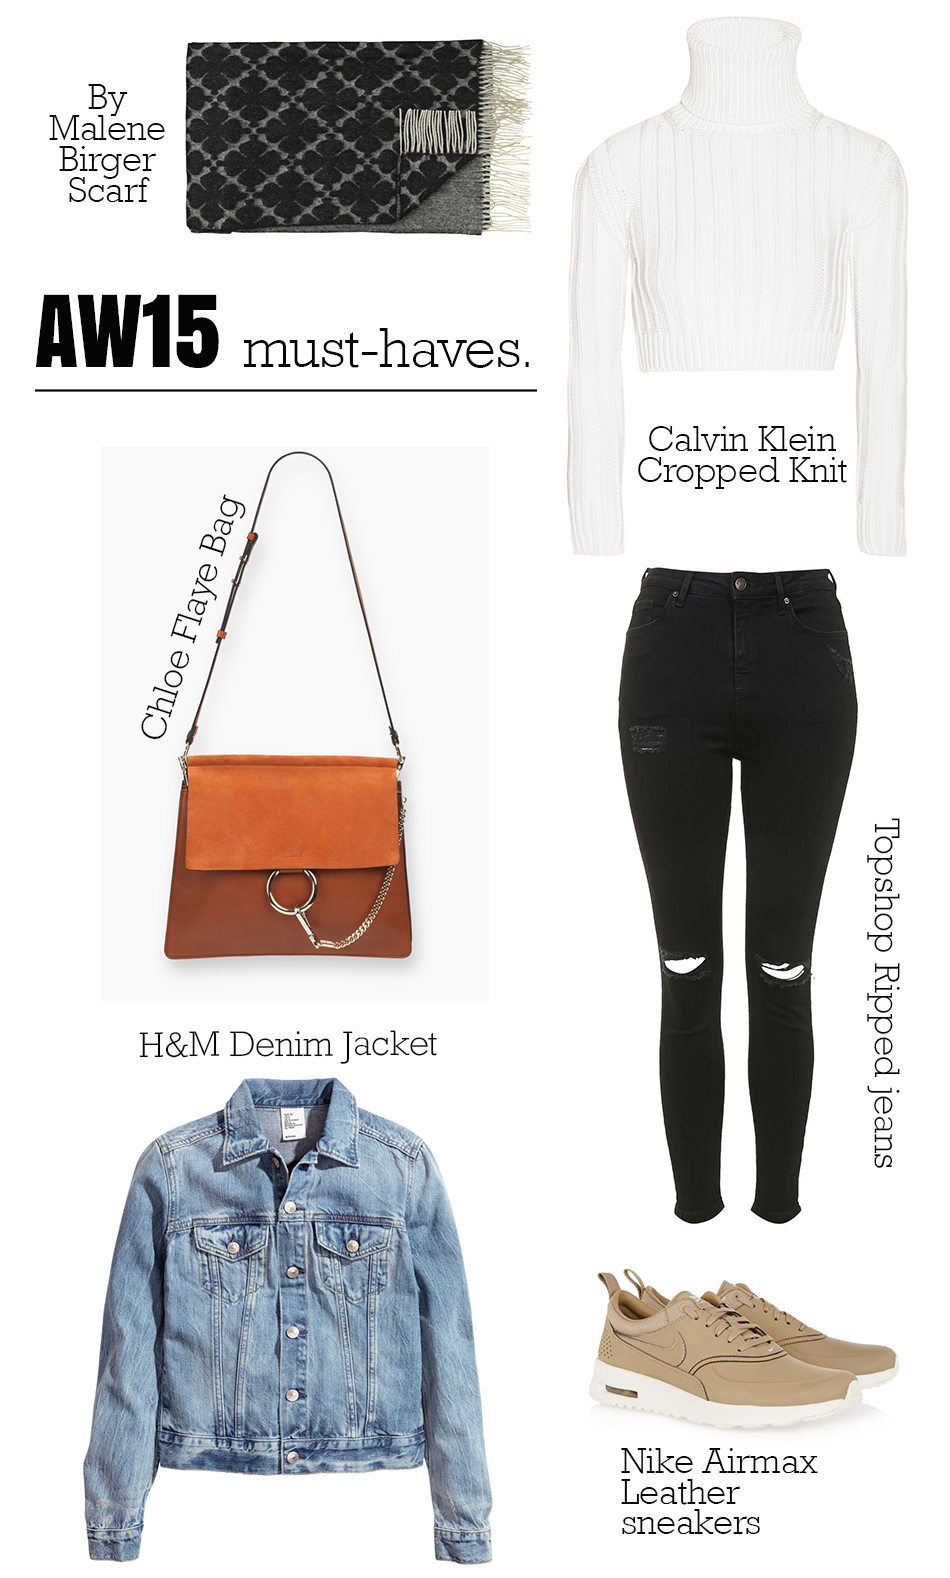 AW15 must haves Septemebr 4th